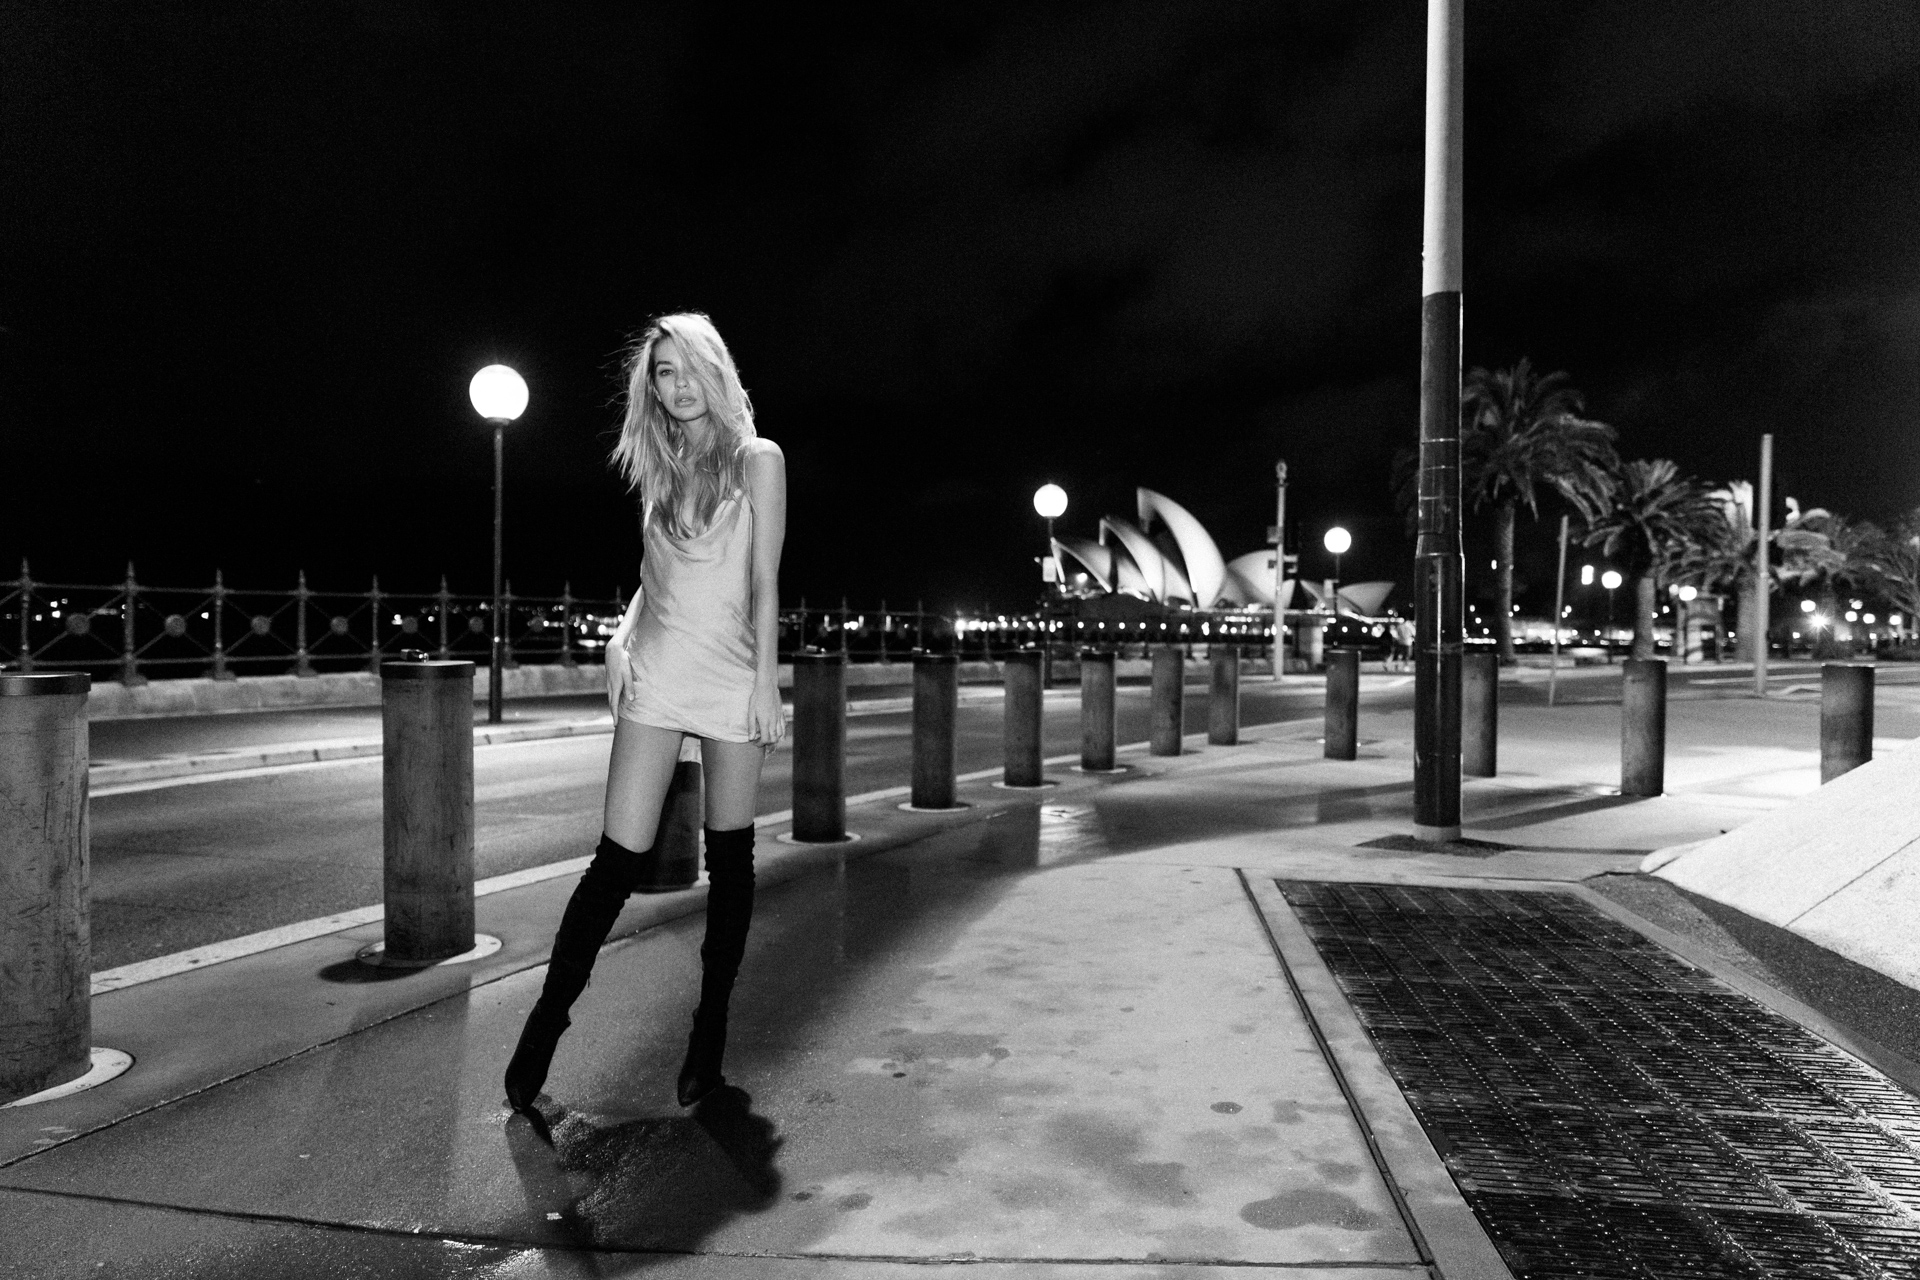 Melbourne girl up in Sydney @ririchix